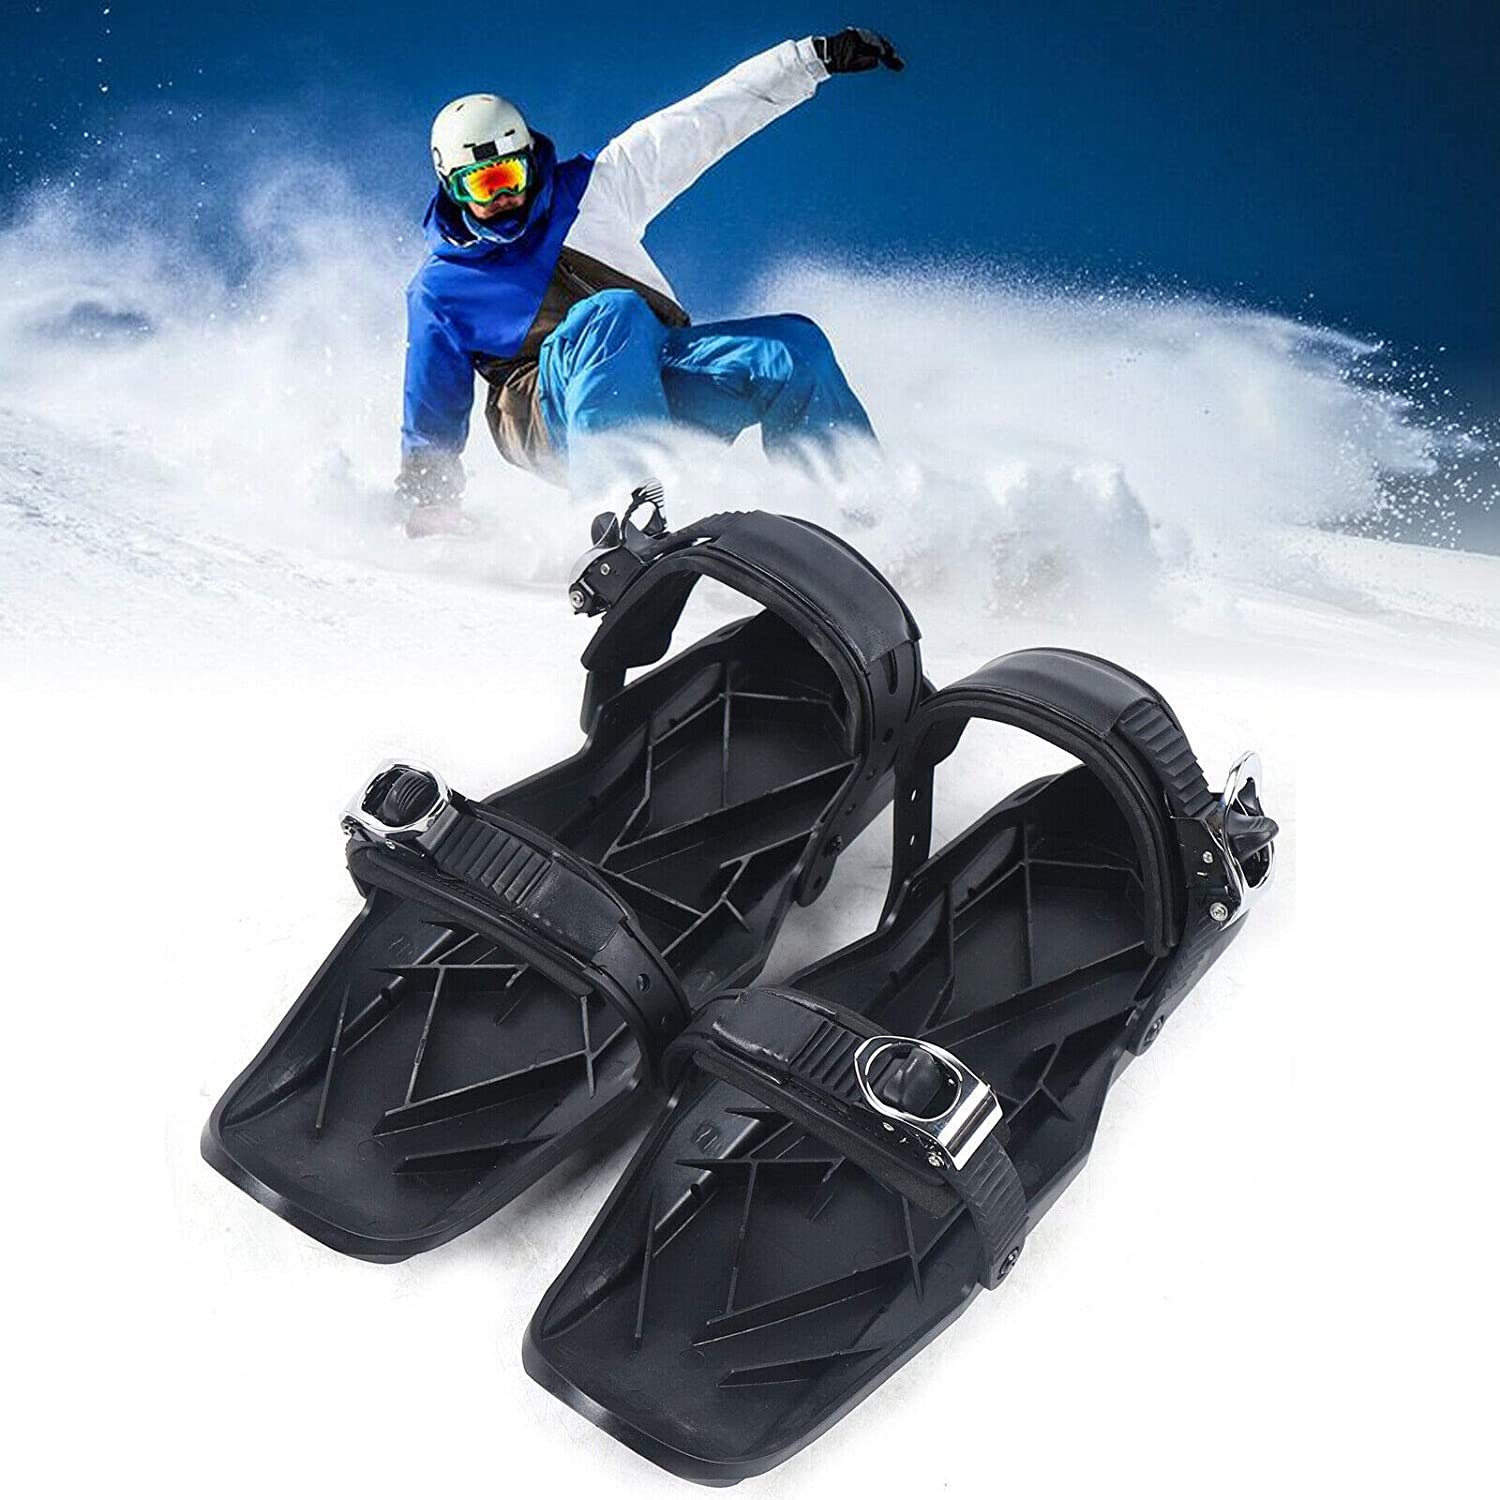 Mini Snow Shoes overseas Upthehill Year-end gift Short Ski for Skiboar